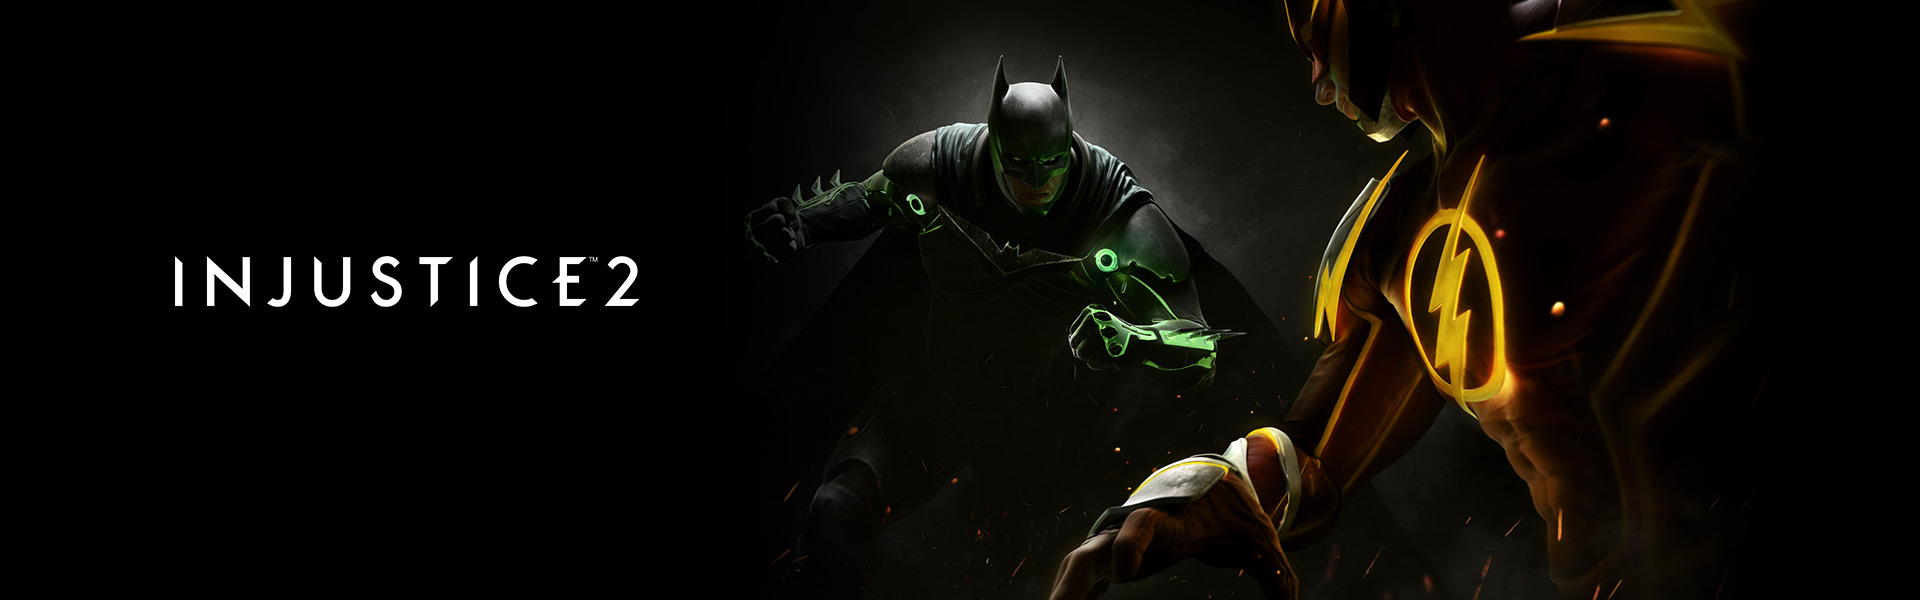 Injustice 2, immagine scura di Batman e Flash che si fronteggiano prima di combattere